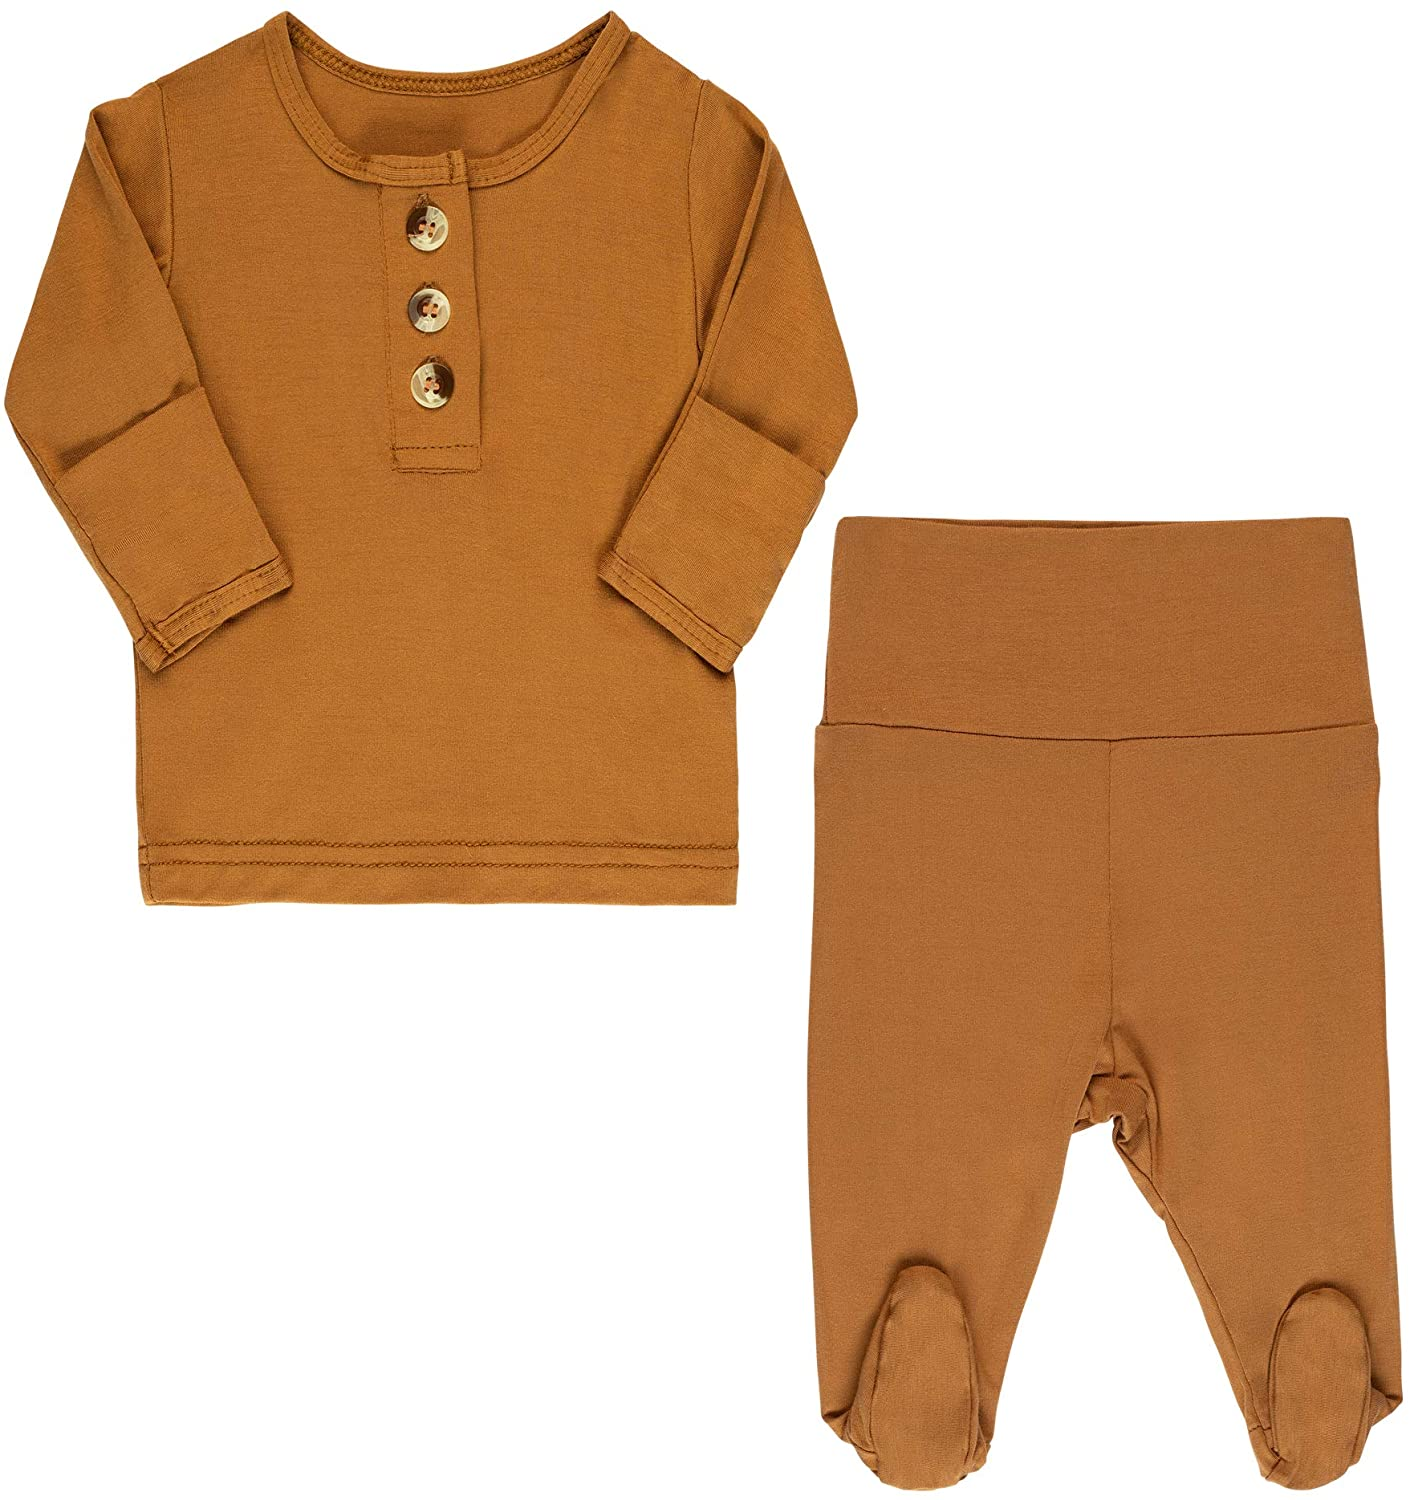 Top 9 Newborn Take Home Outfit For Baby Boy